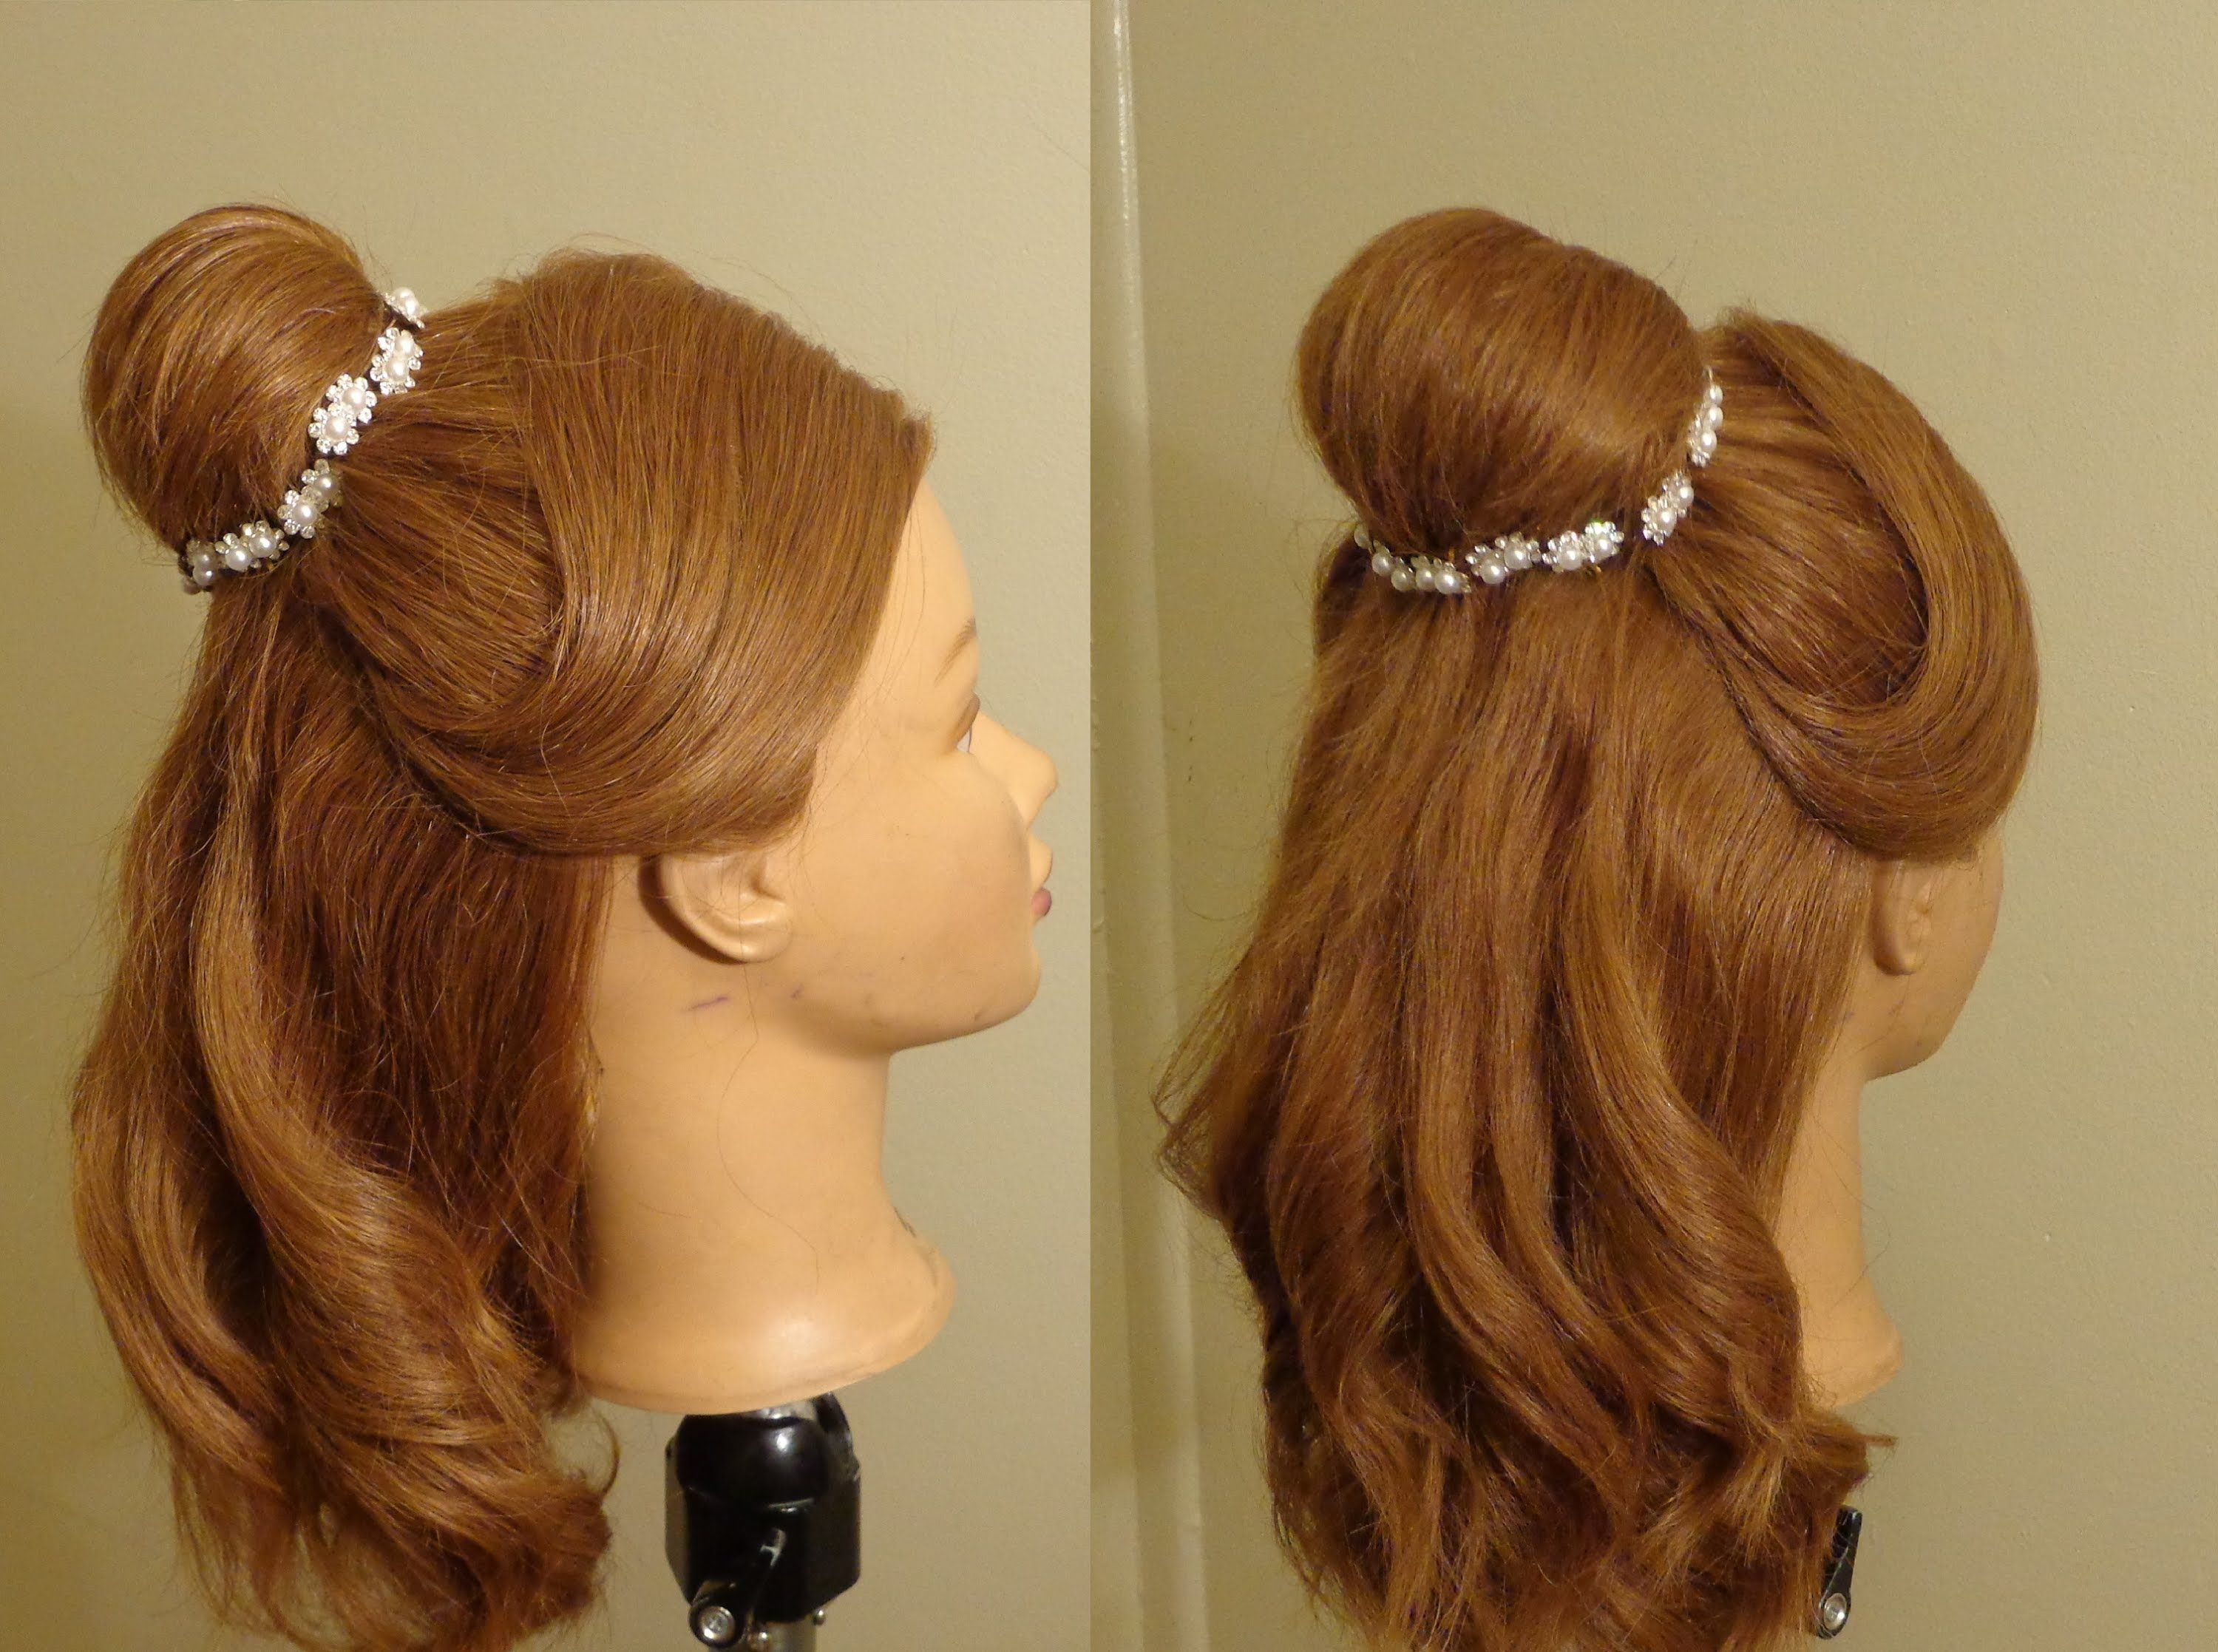 Beauty And Beast Belle S Hairstyle Belle Hairstyle Kids Hairstyles Beauty And The Beast Costume